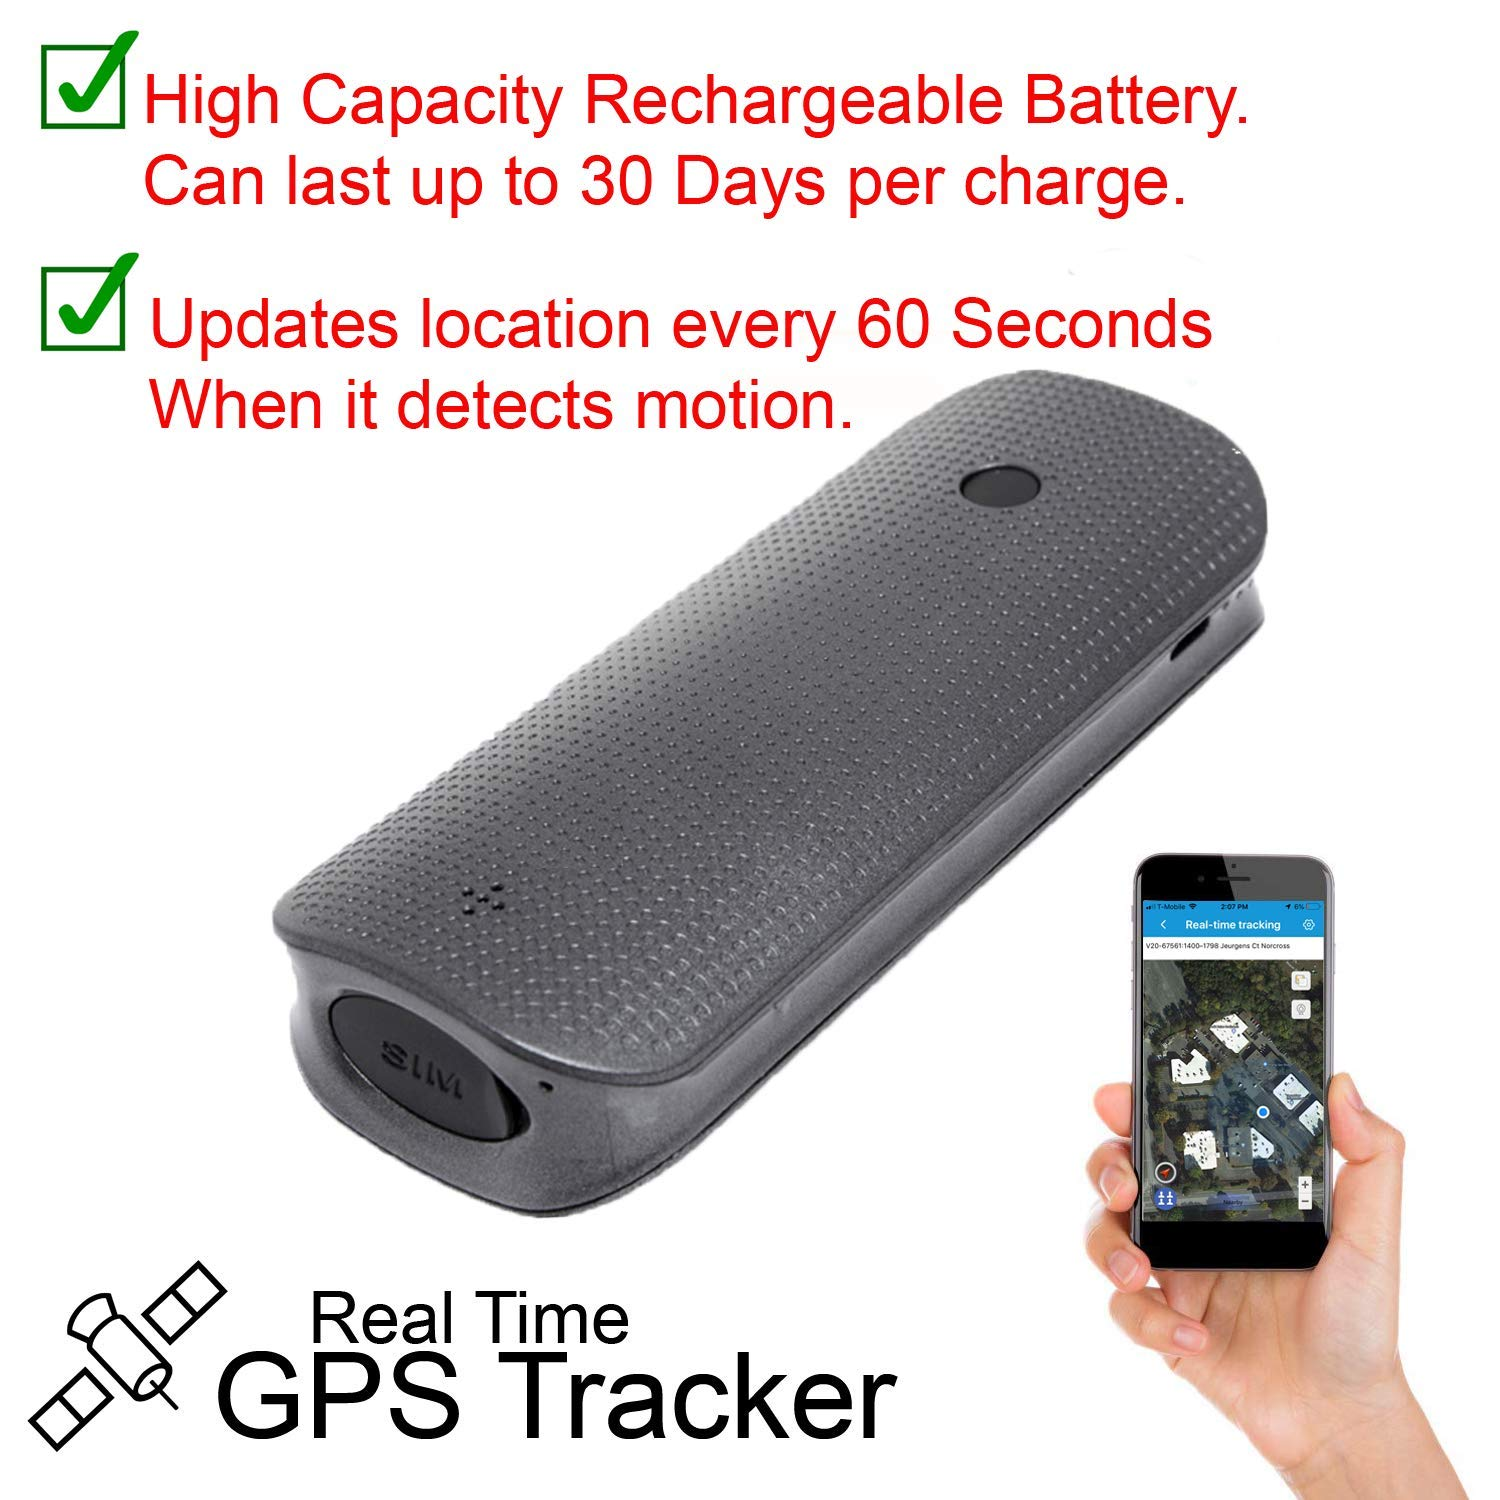 5400mAh Power Bank GPS Tracker Personal Realtime Tracking Device Standby 80 Days